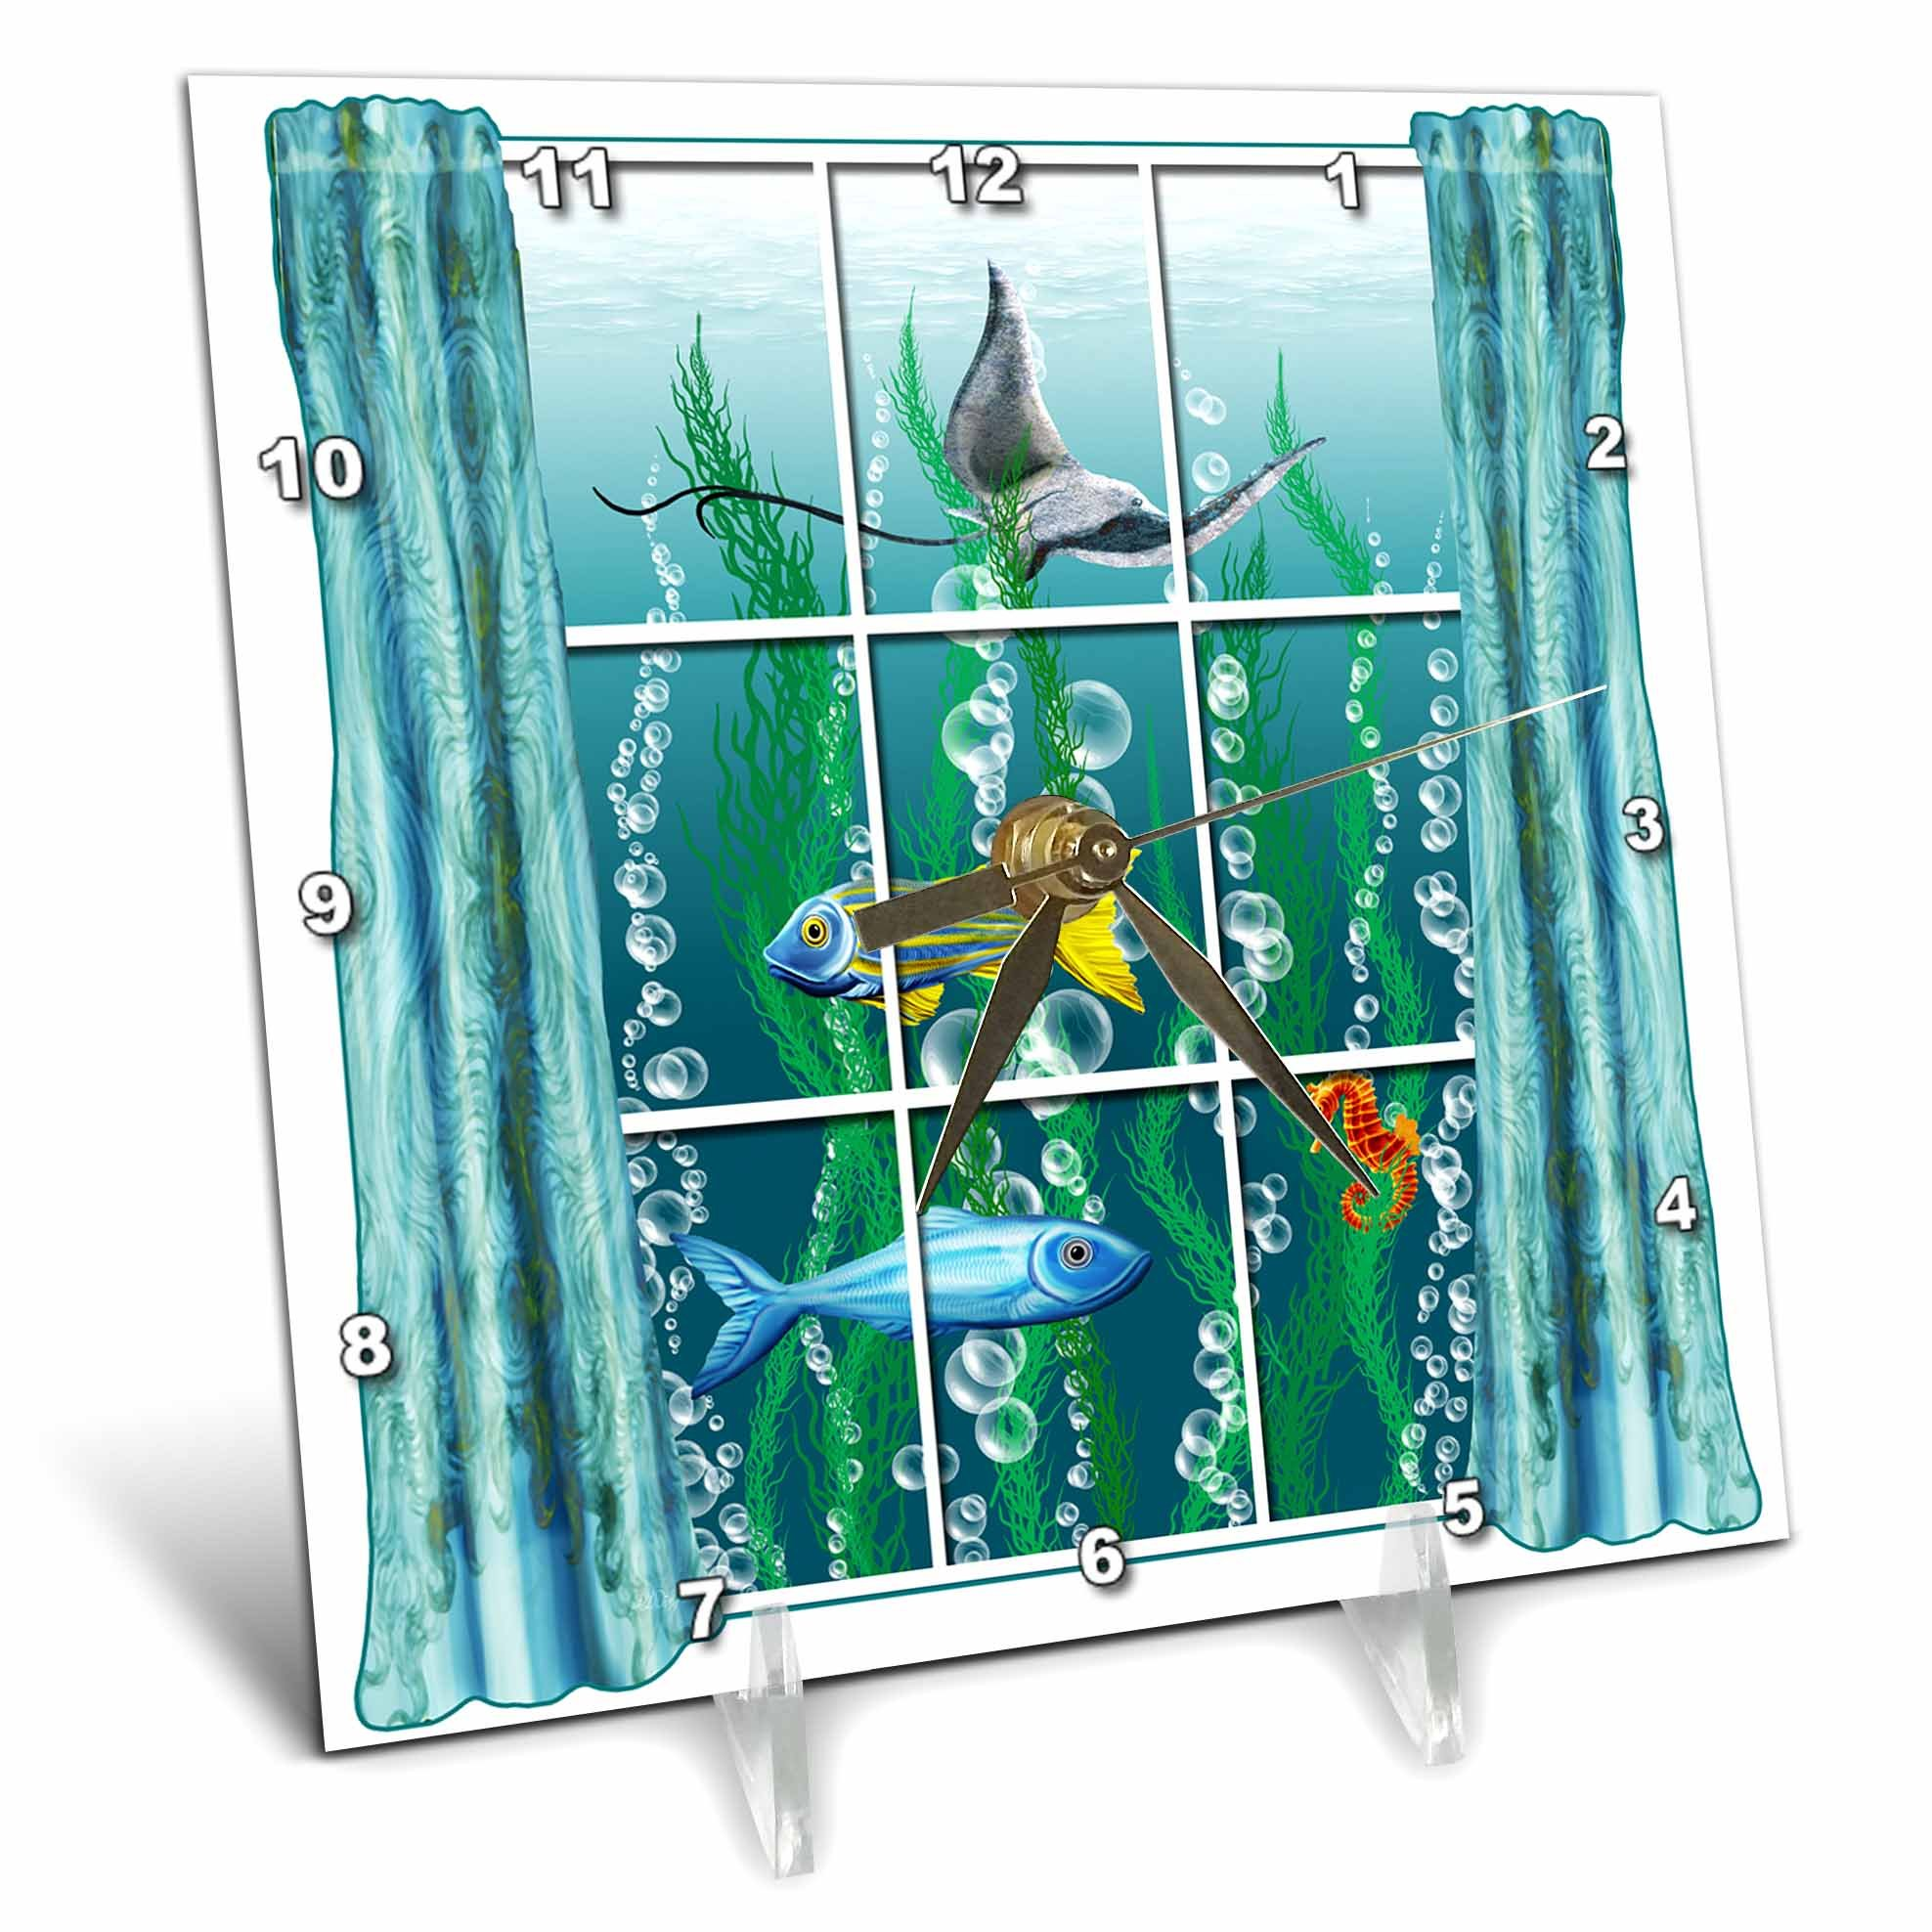 3dRose Dream Essence Designs-The Ocean - A surreal scene of a room with view to ocean life through the window. - 6x6 Desk Clock (dc_266098_1)